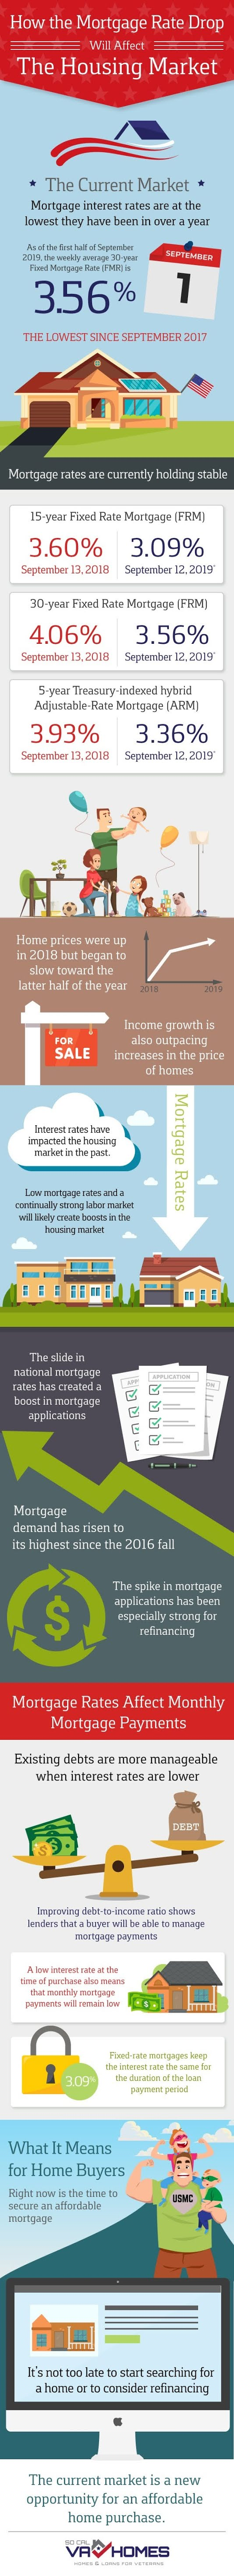 How the Mortgage Rate Drop Will Affect the Housing Market #infographic